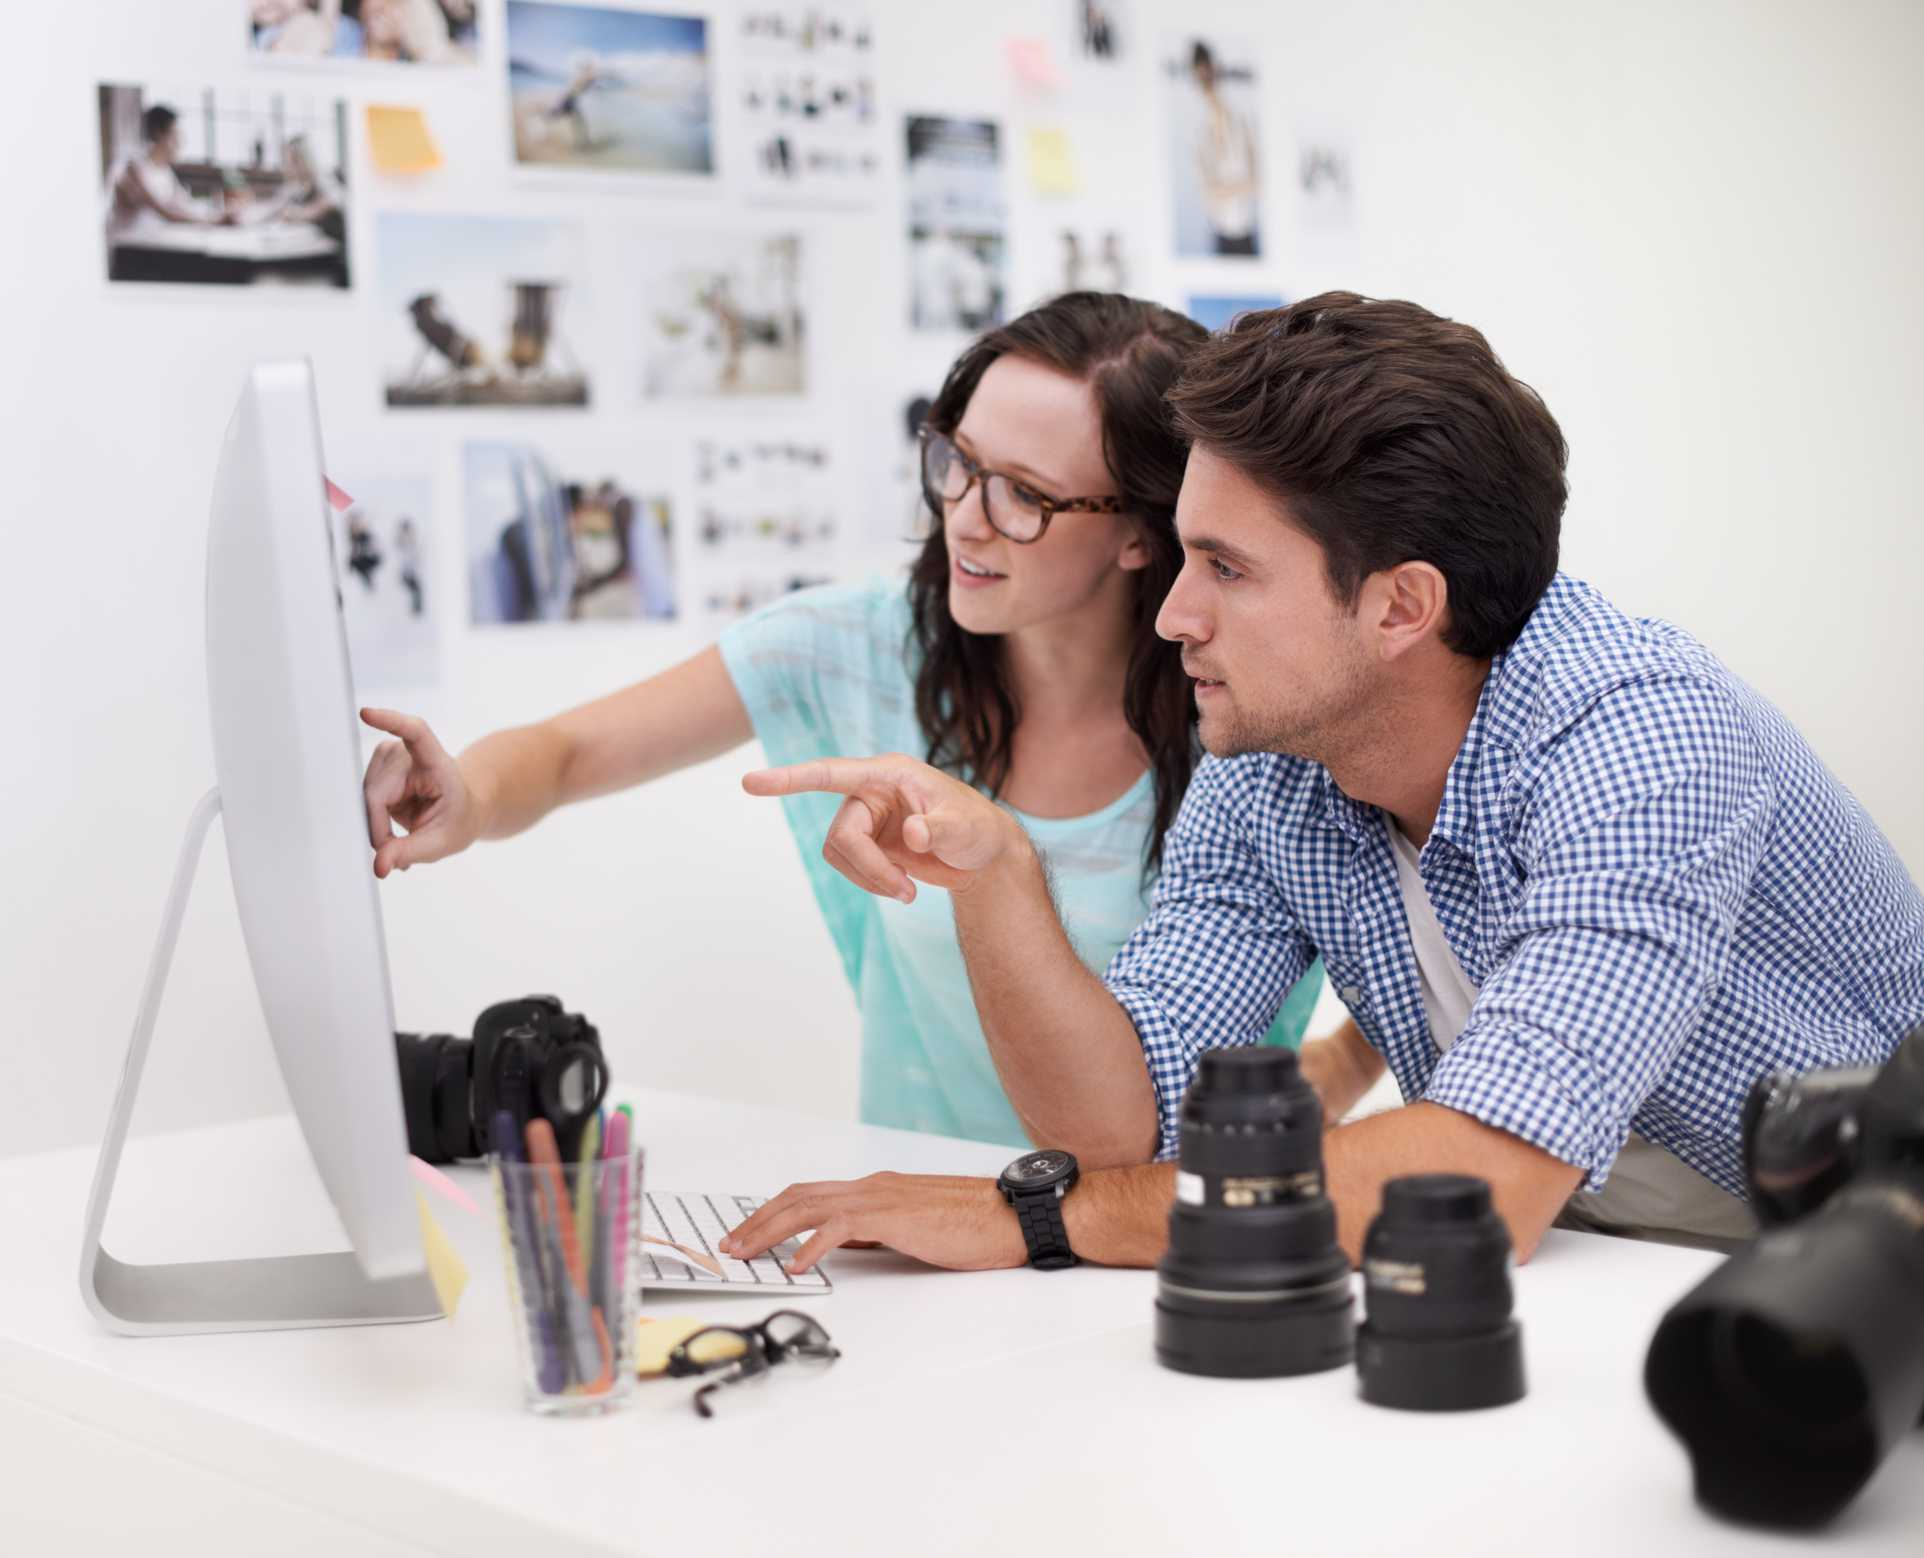 Two model bookers pointing at photos on a computer monitor.